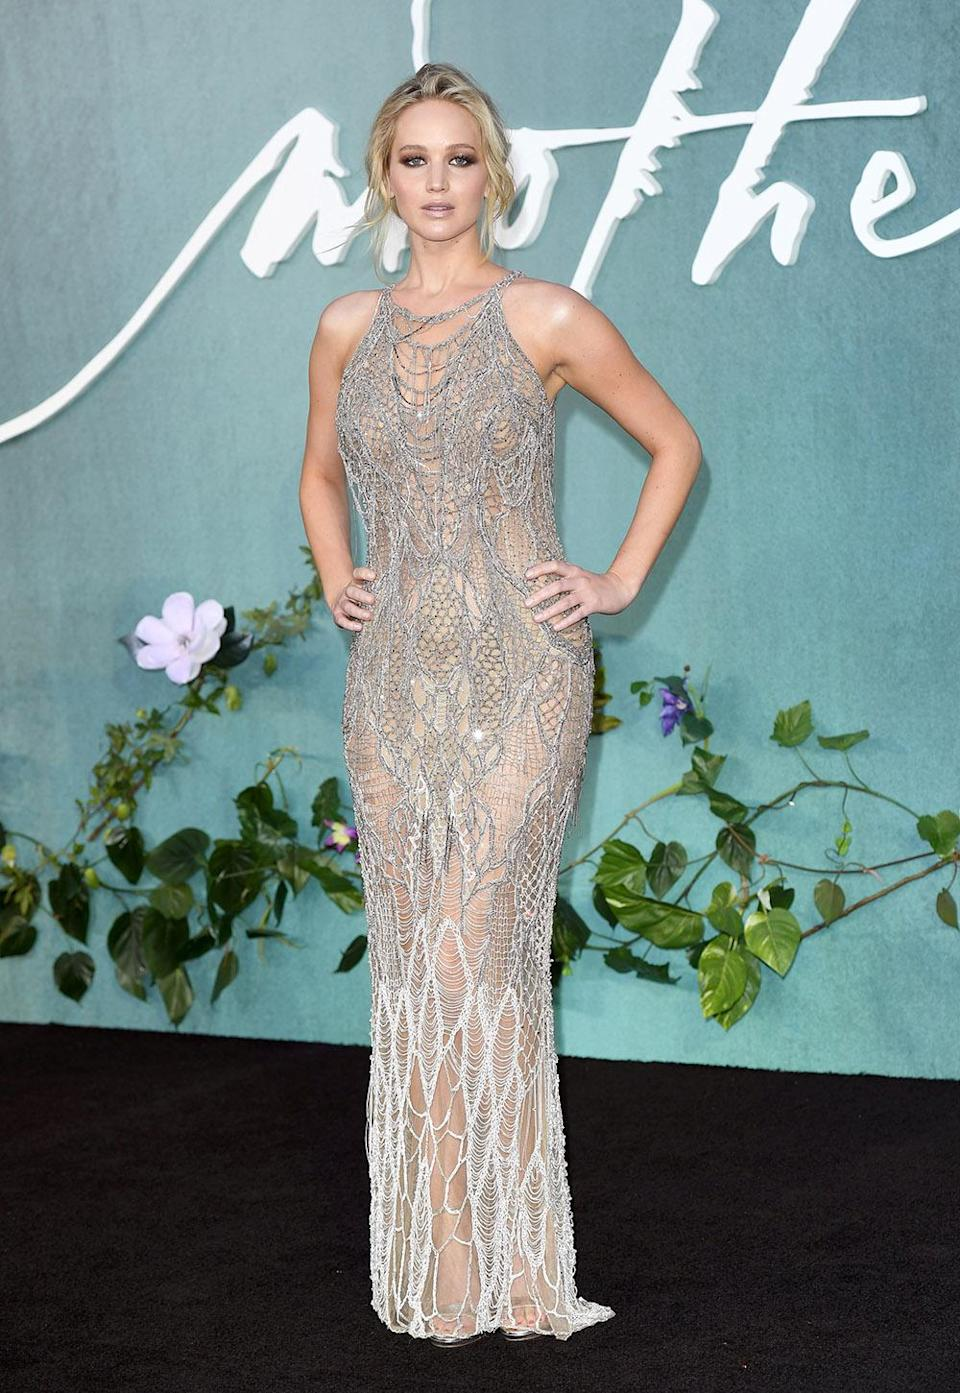 The <em>Silver Linings Playbook</em> star wore a silver Versace dress. (Photo by Karwai Tang/WireImage)